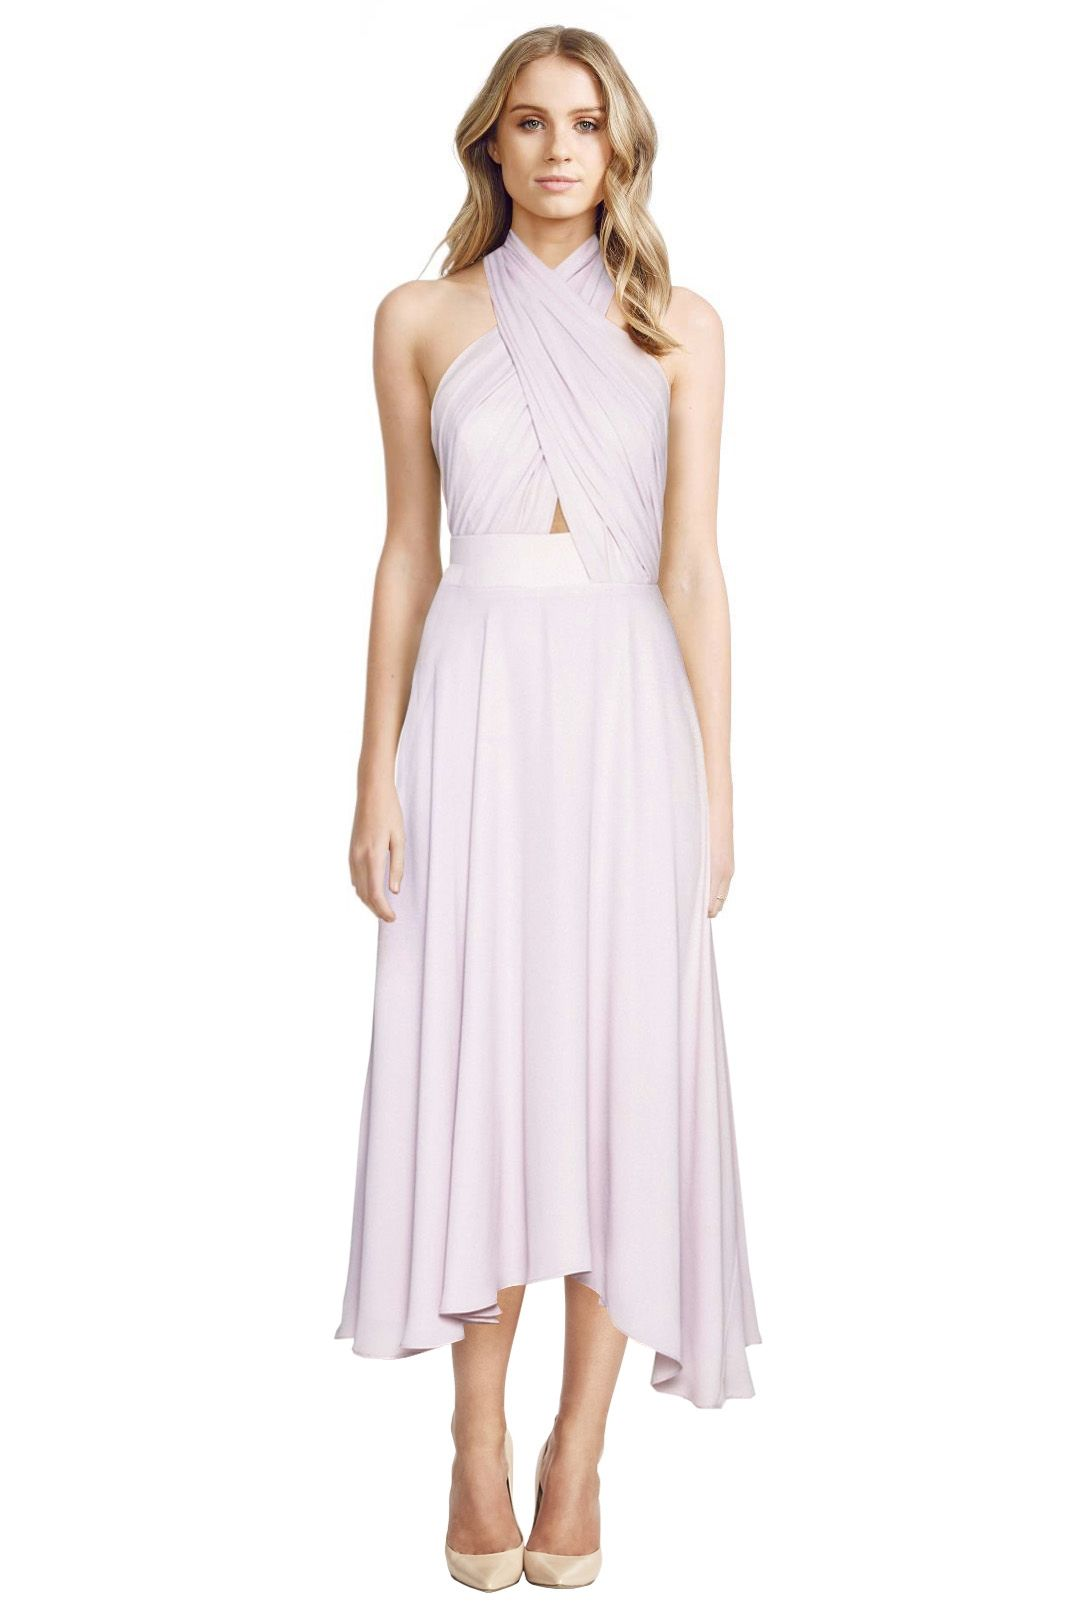 Camilla and Marc - Golden Myna Dress - Pink - Front